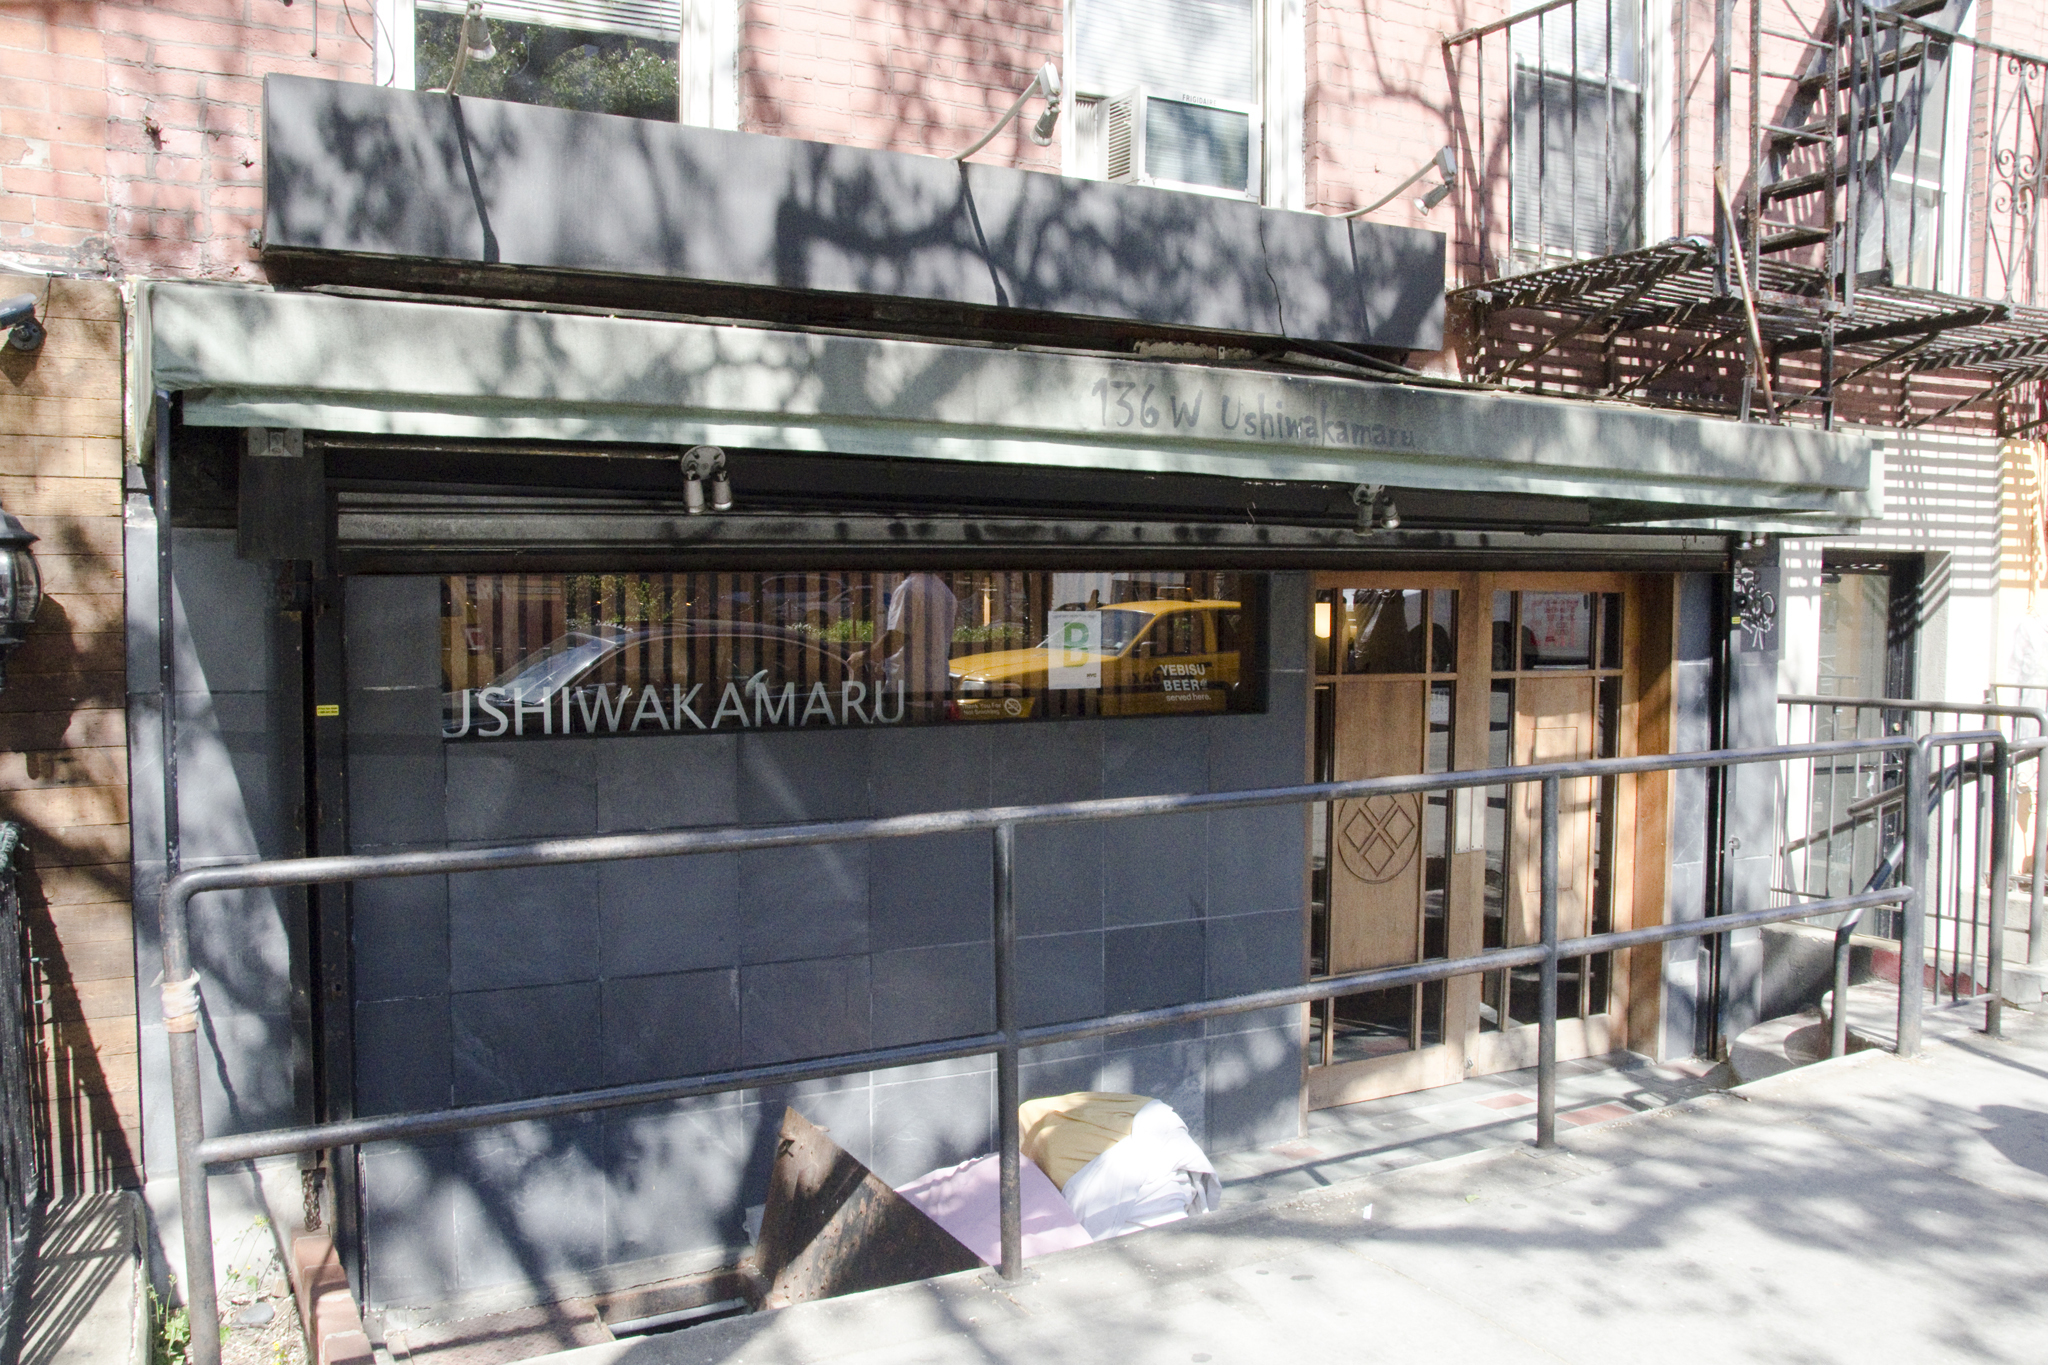 Ushiwakamaru (CLOSED) | Restaurants in Greenwich Village, New York